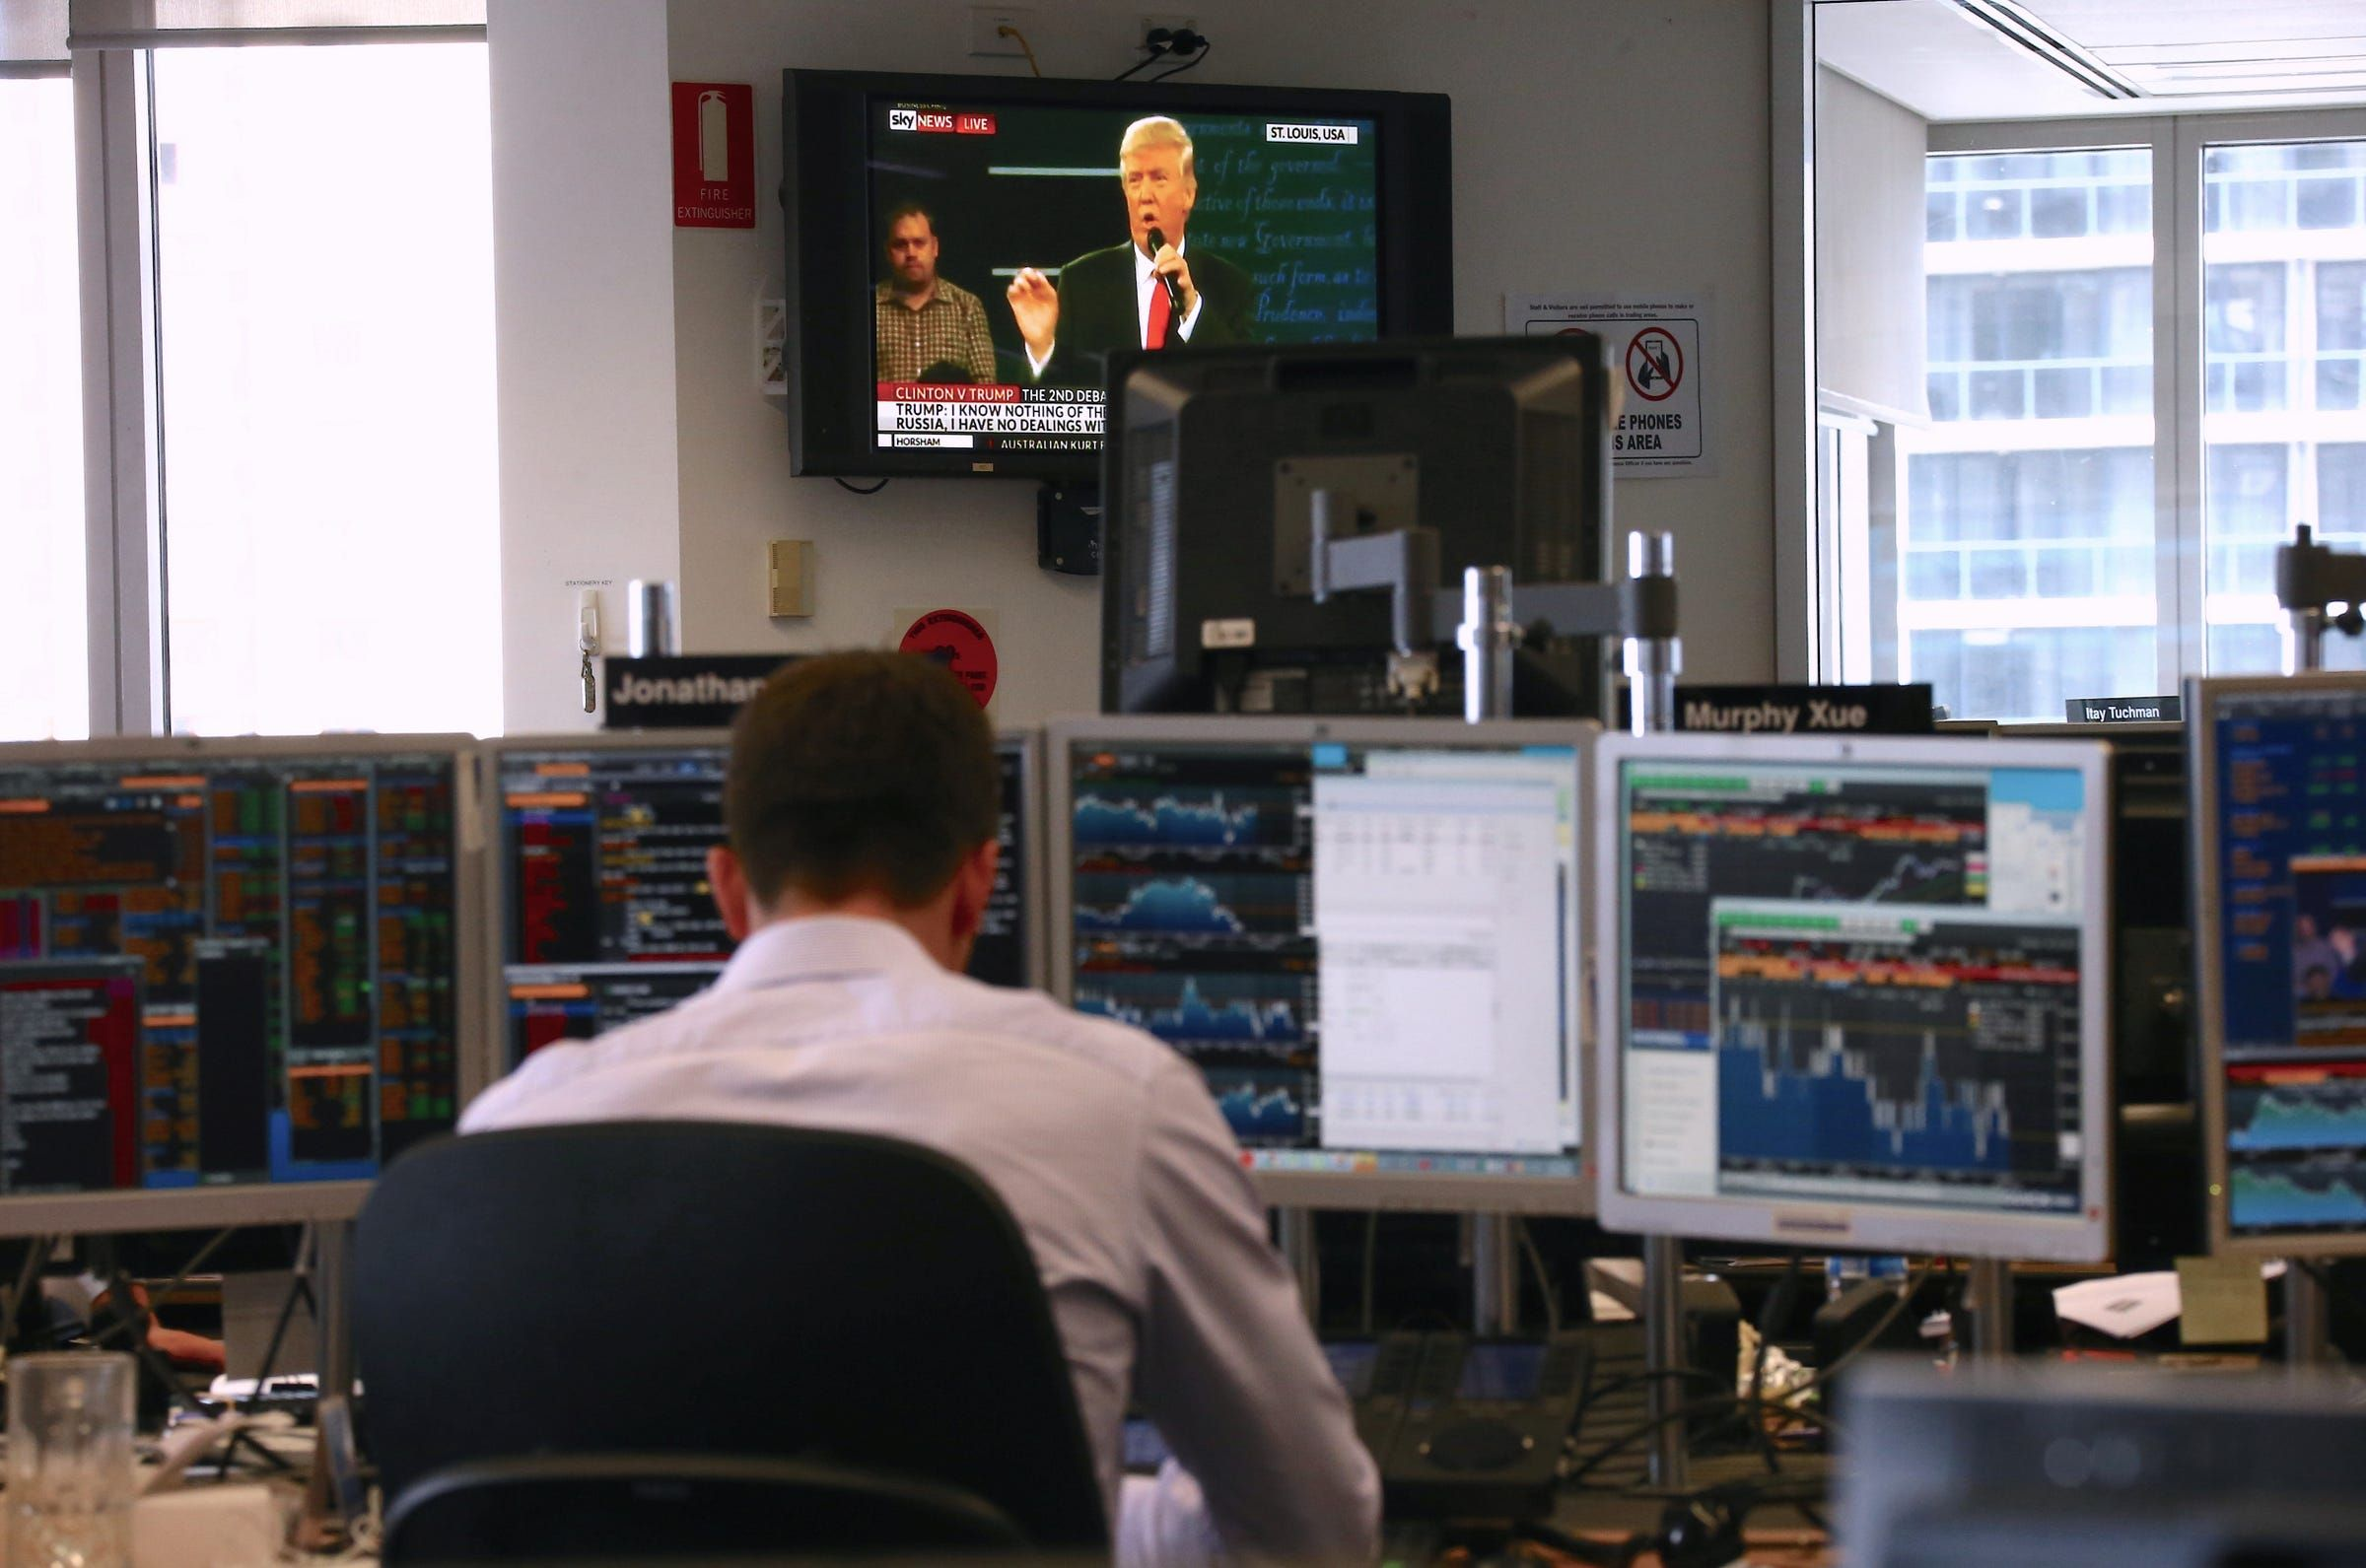 A Wall Street trading bonanza how to benefit from the